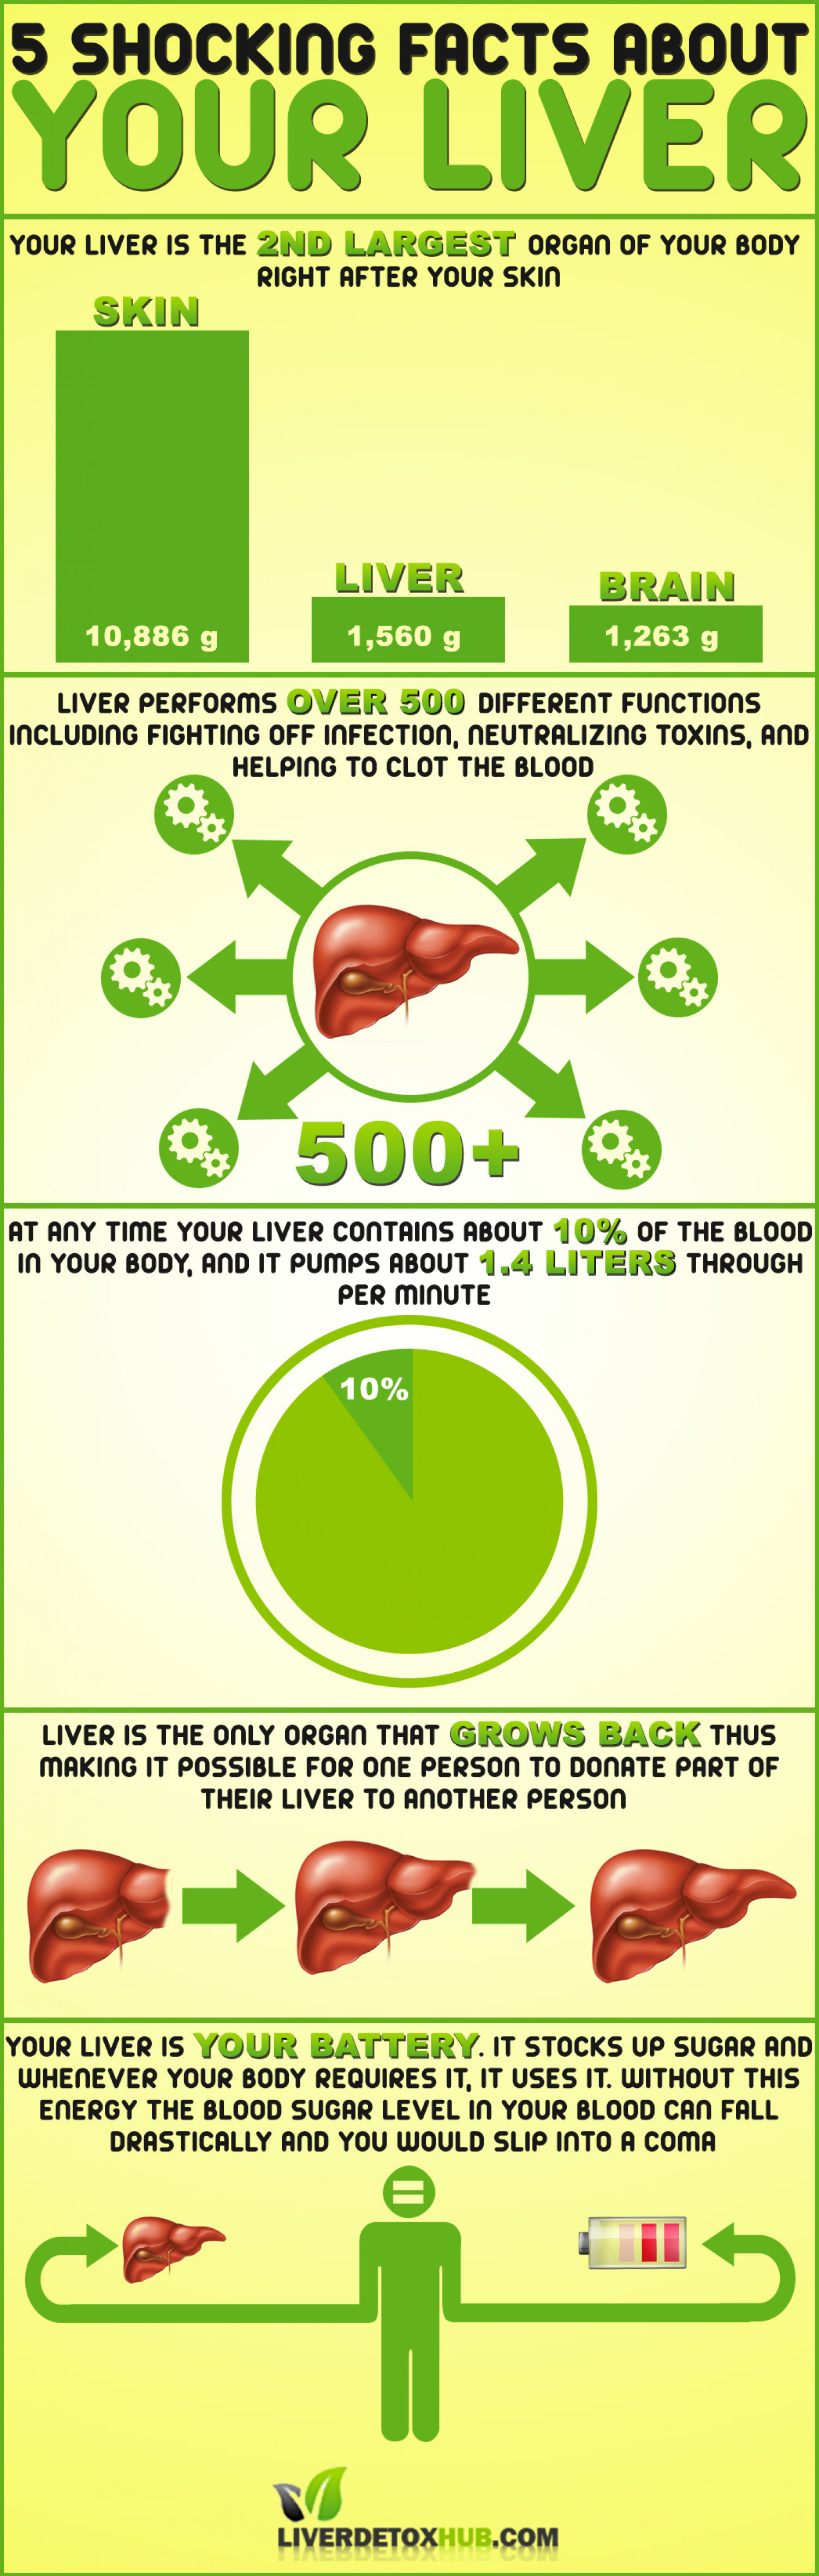 5 Shocking Facts About Your Liver Infographic